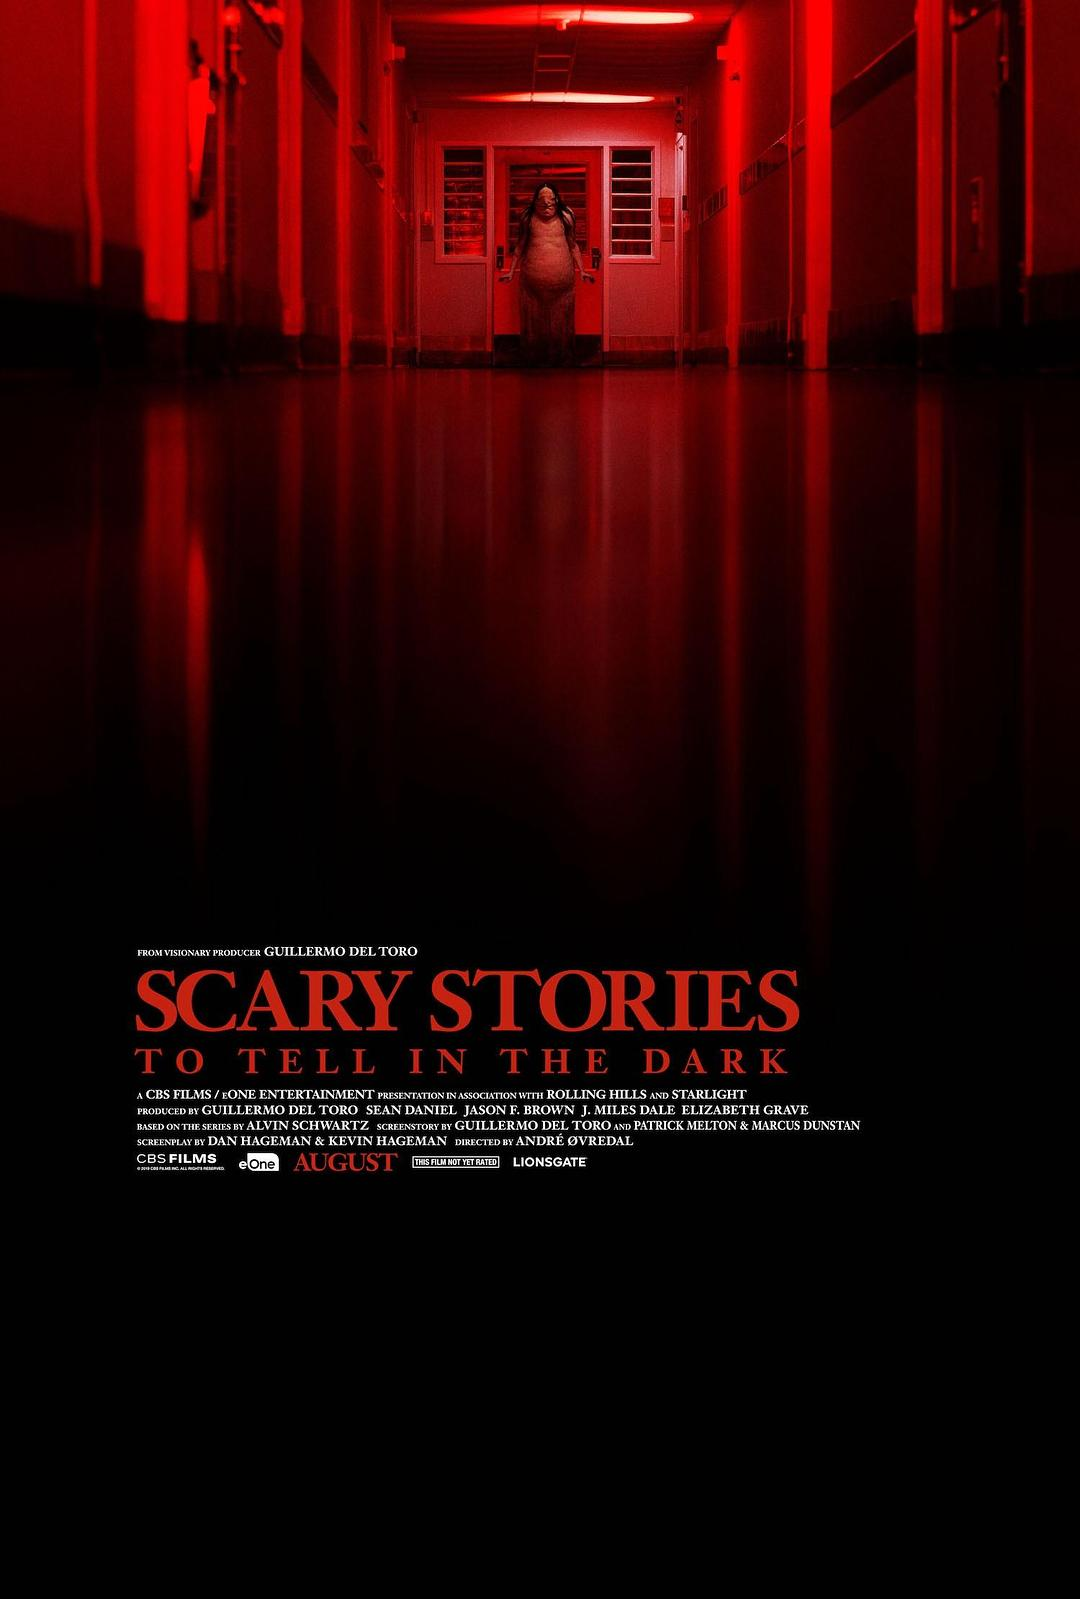 在黑暗中讲述的恐怖故事 Scary Stories to Tell in the Dark